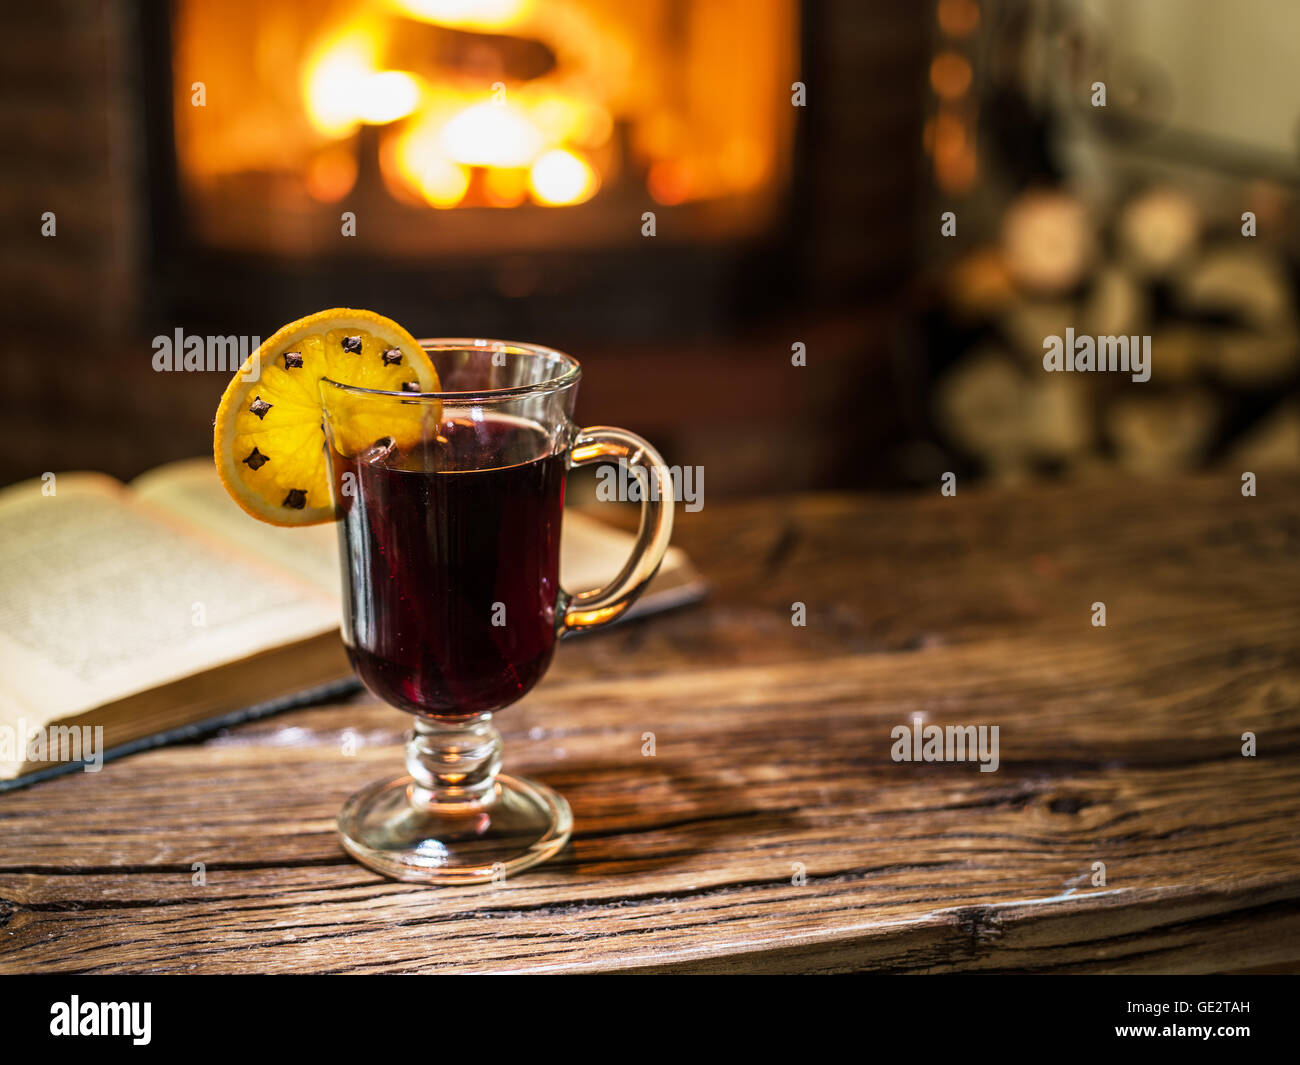 Riesling Am Kamin Weinkarte Winter Warm Fire Wine Stockfotos And Winter Warm Fire Wine